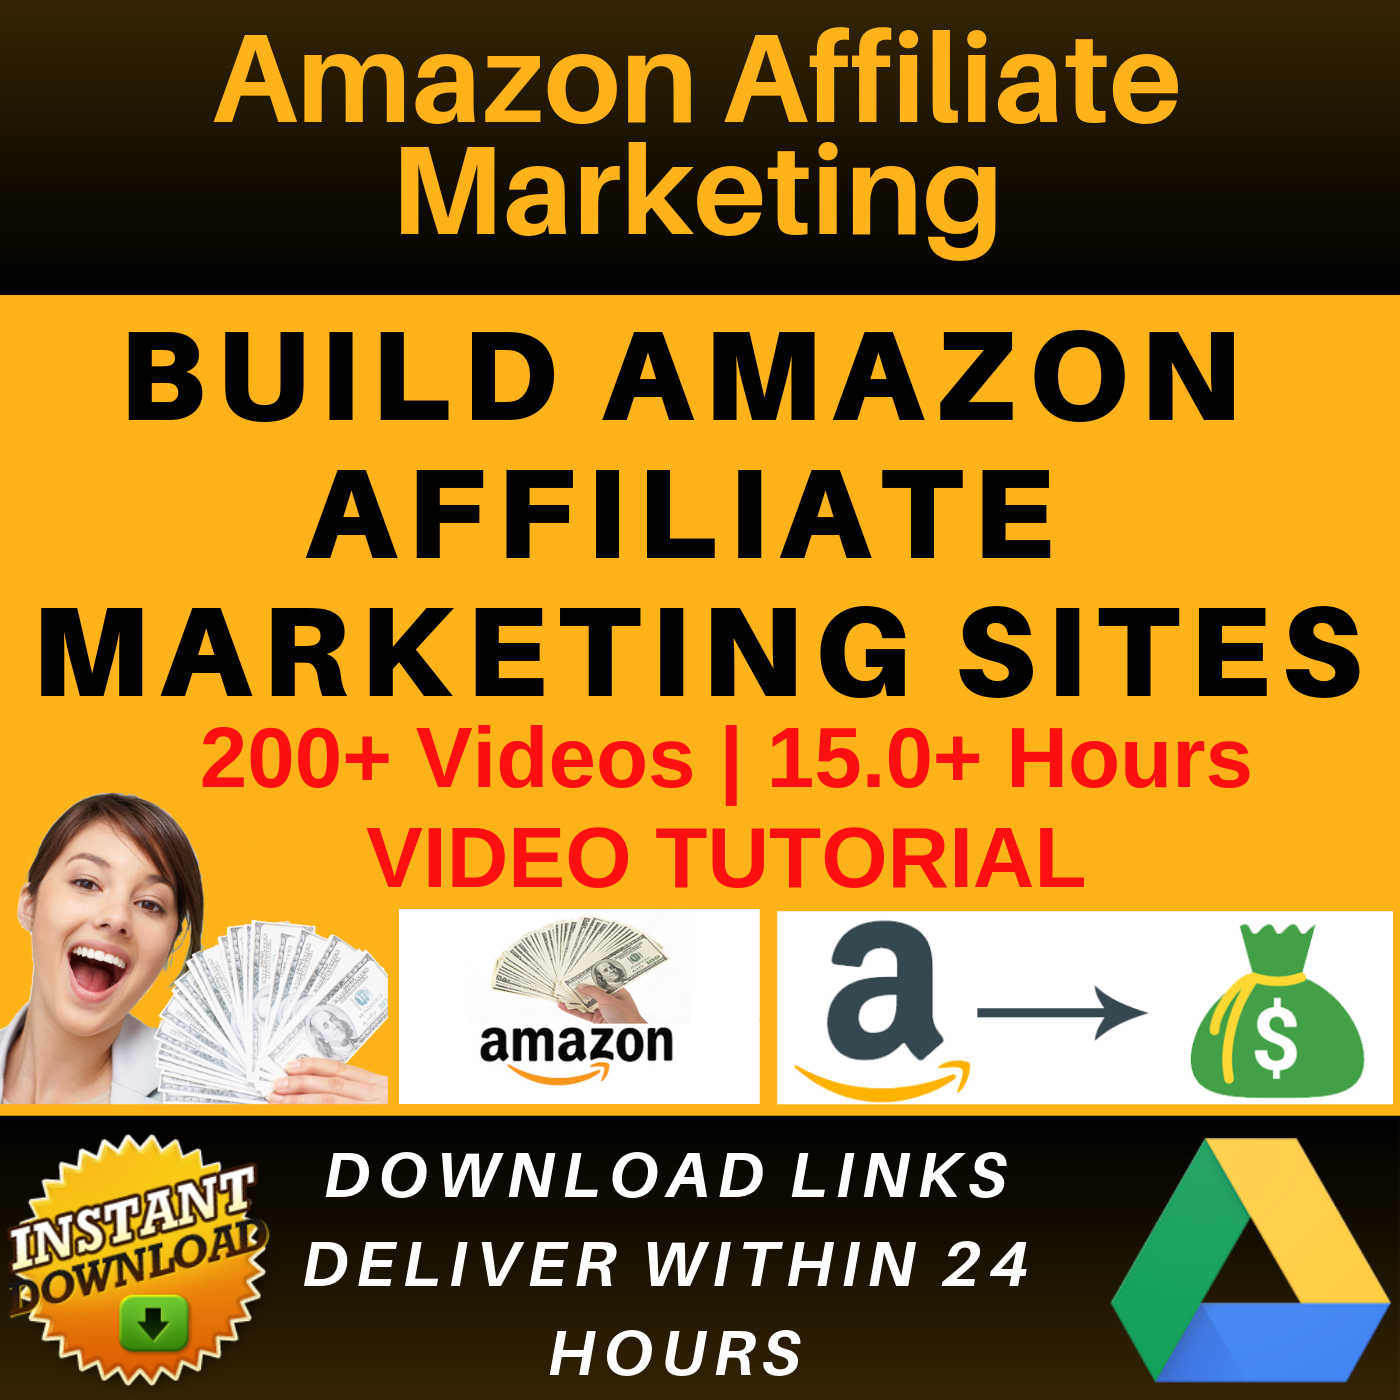 Amazon Affiliate Marketing $1000 per Month - Video Training (Eng)